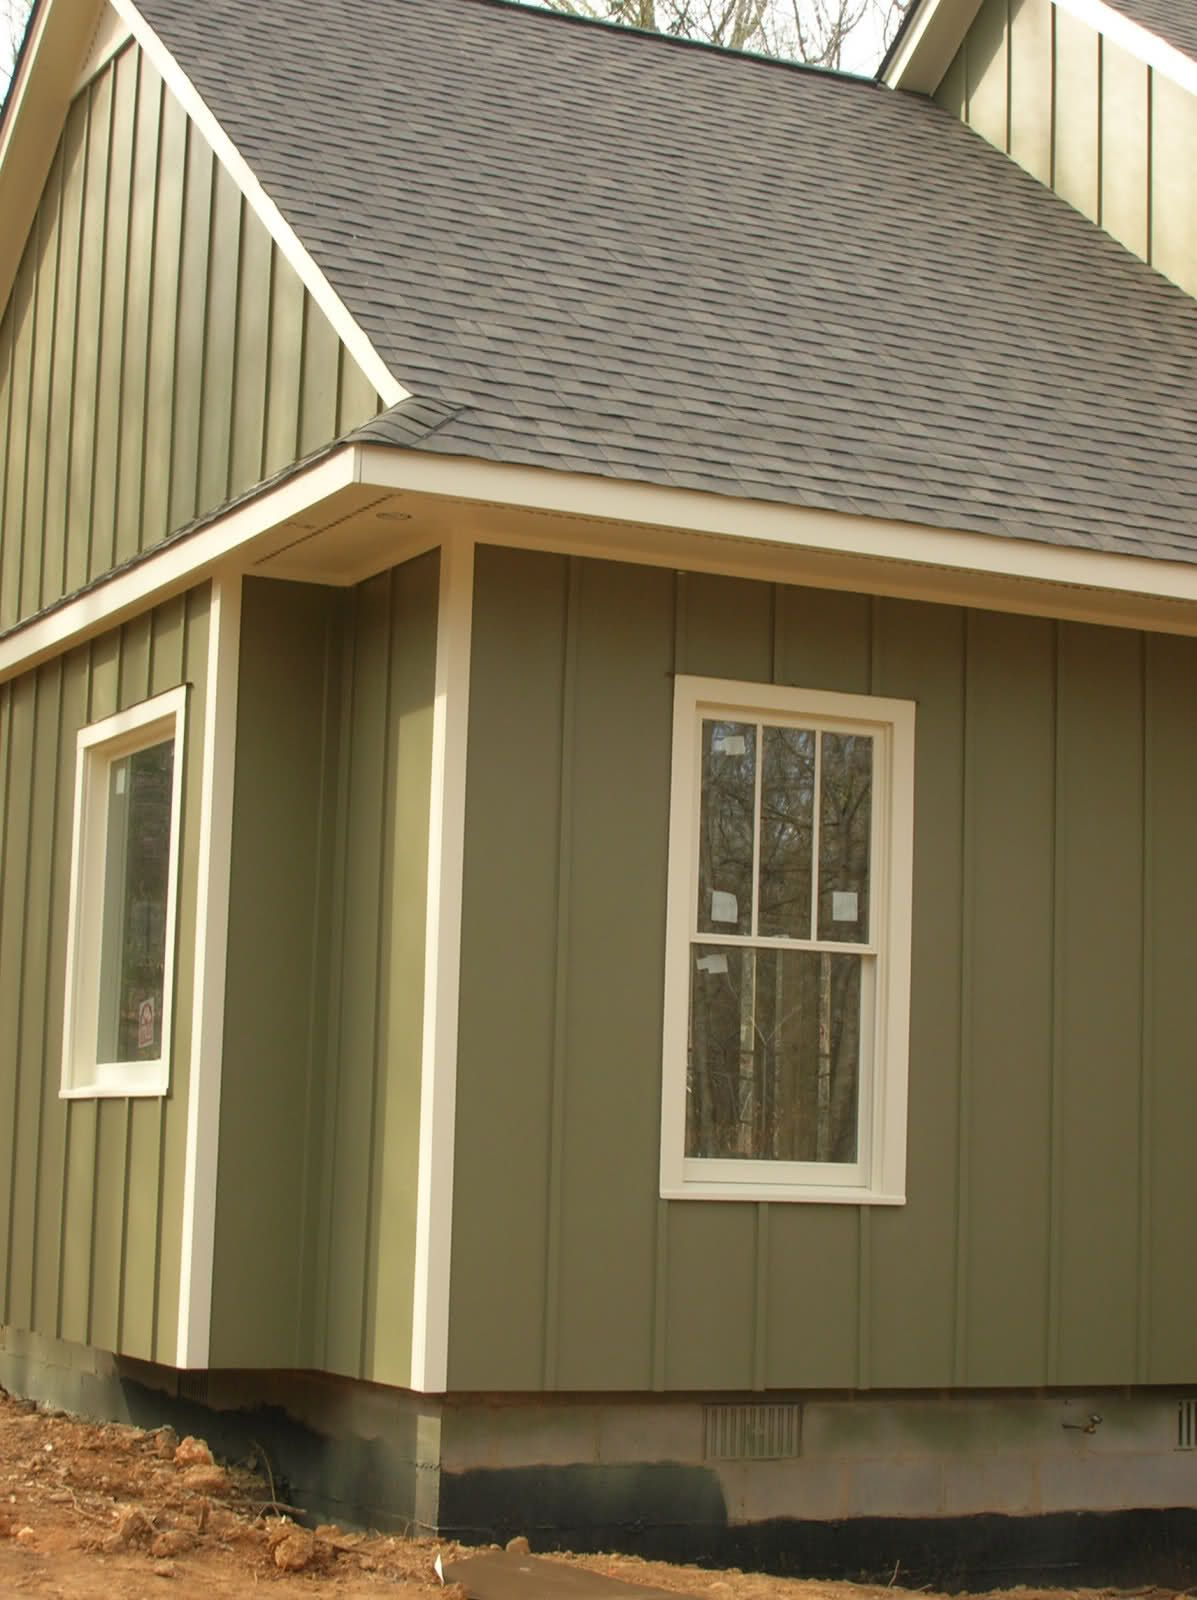 Vertical Wood Siding Painted Green Board And Batten Exterior House Siding House Exterior